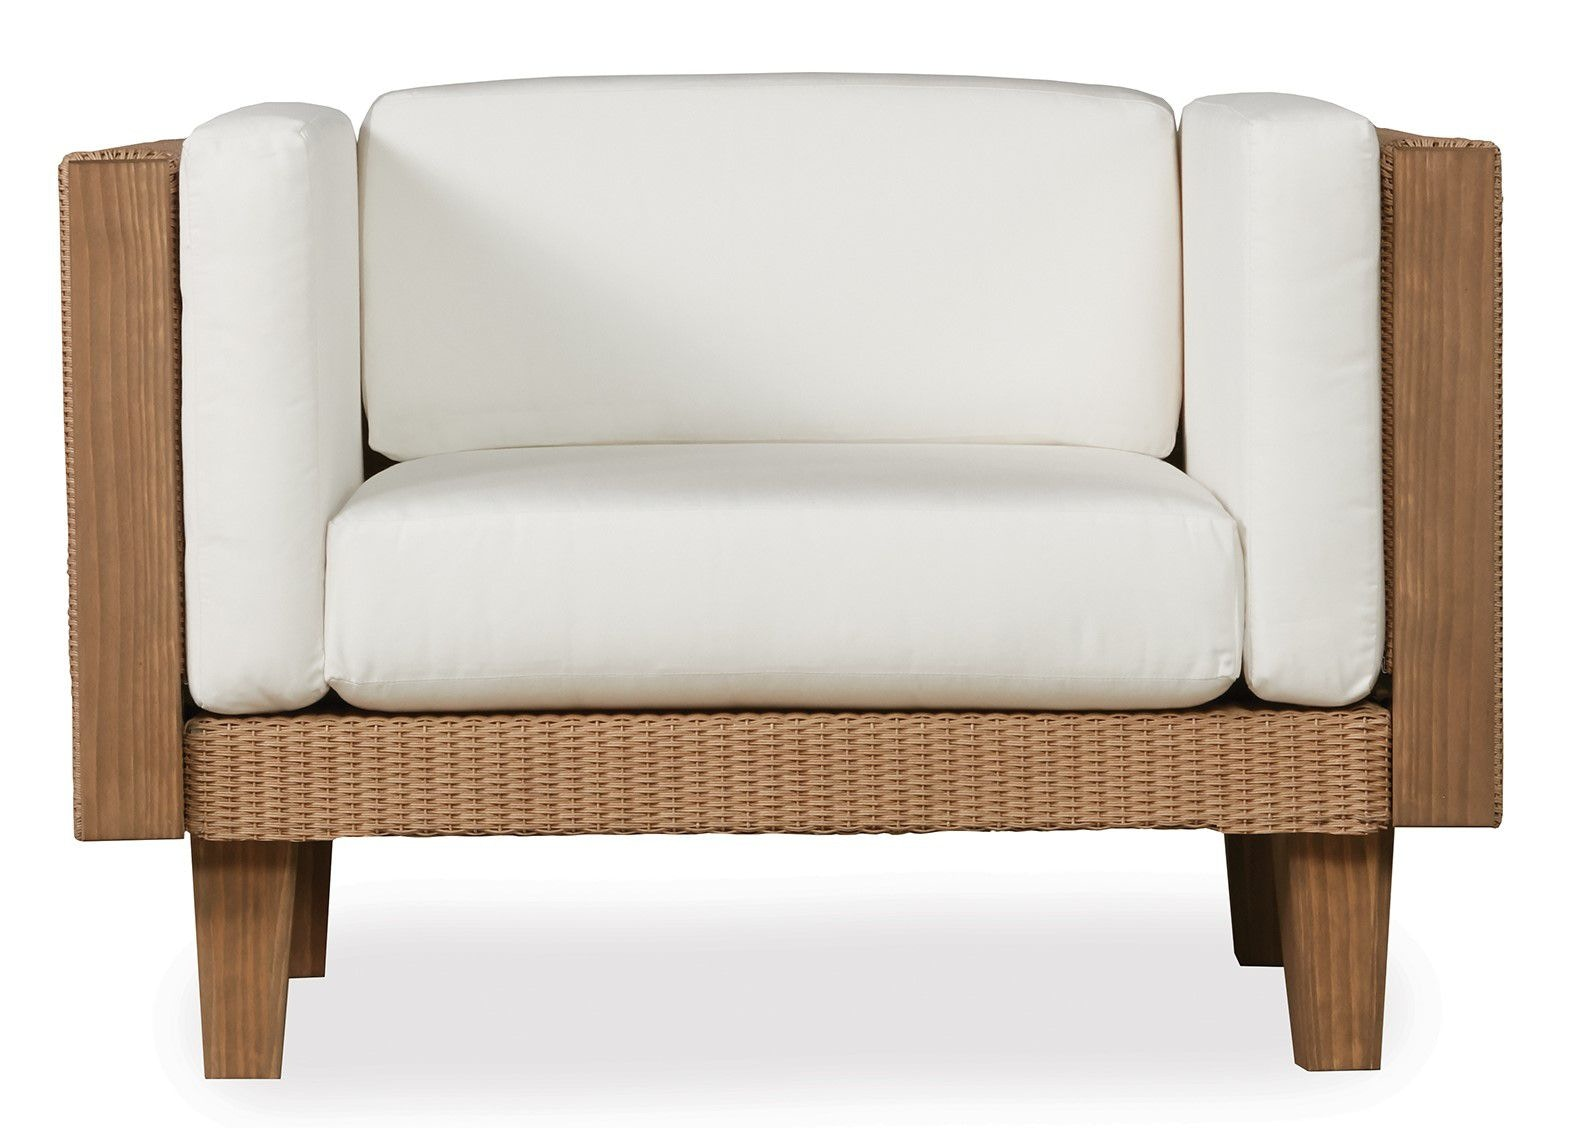 144002. Catalina Lounge Chair · 144002 · Catalina · Lloyd Flanders